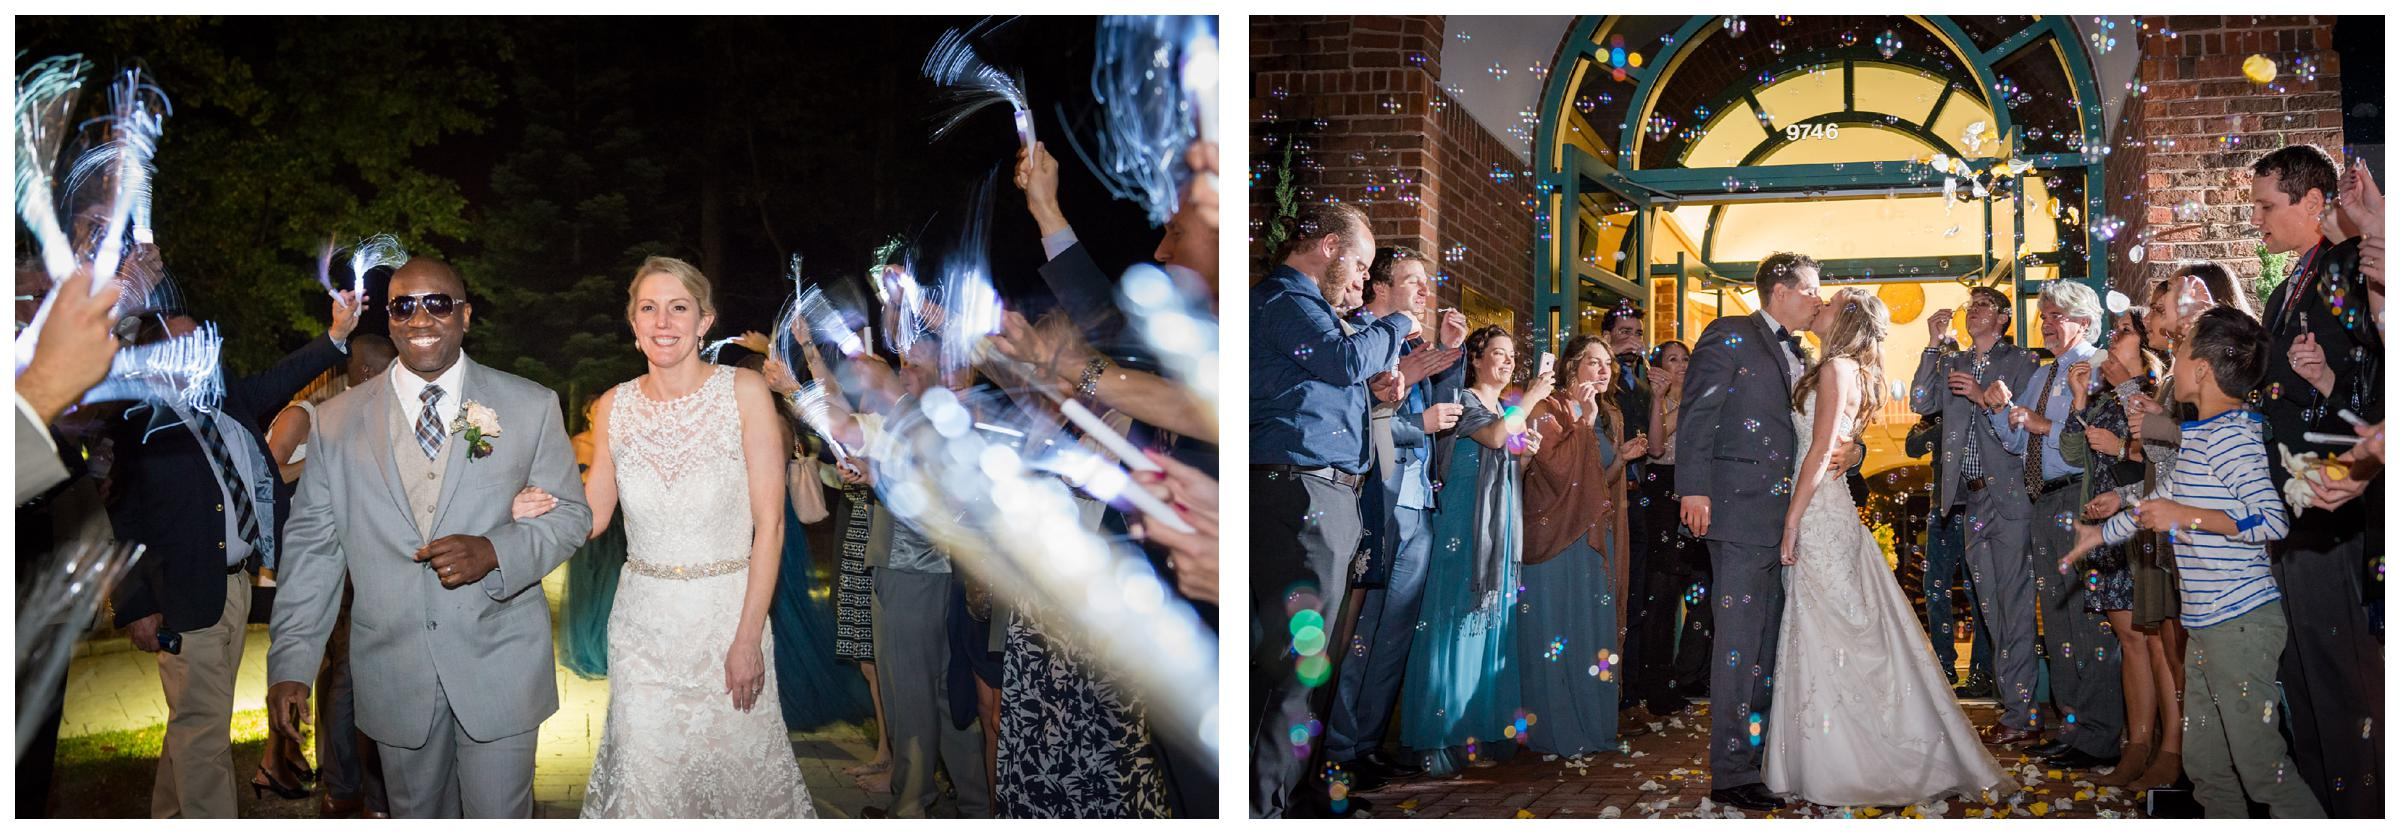 wedding glow stick exit and bubble send-off